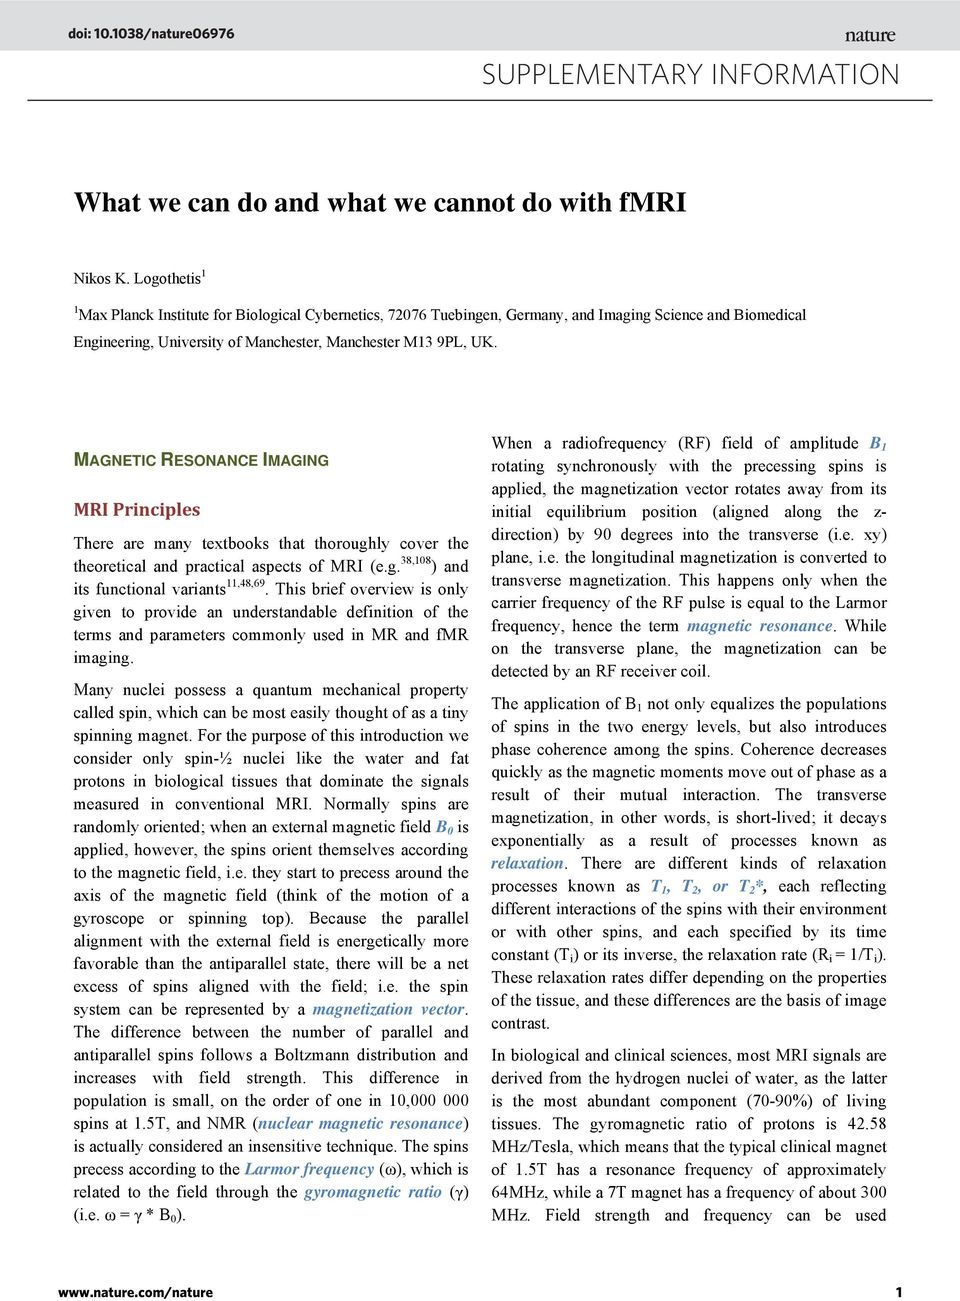 MRI contrast can be generated from a number of different quantities, including regional spin density, water diffusion, or the relaxation times mentioned above.